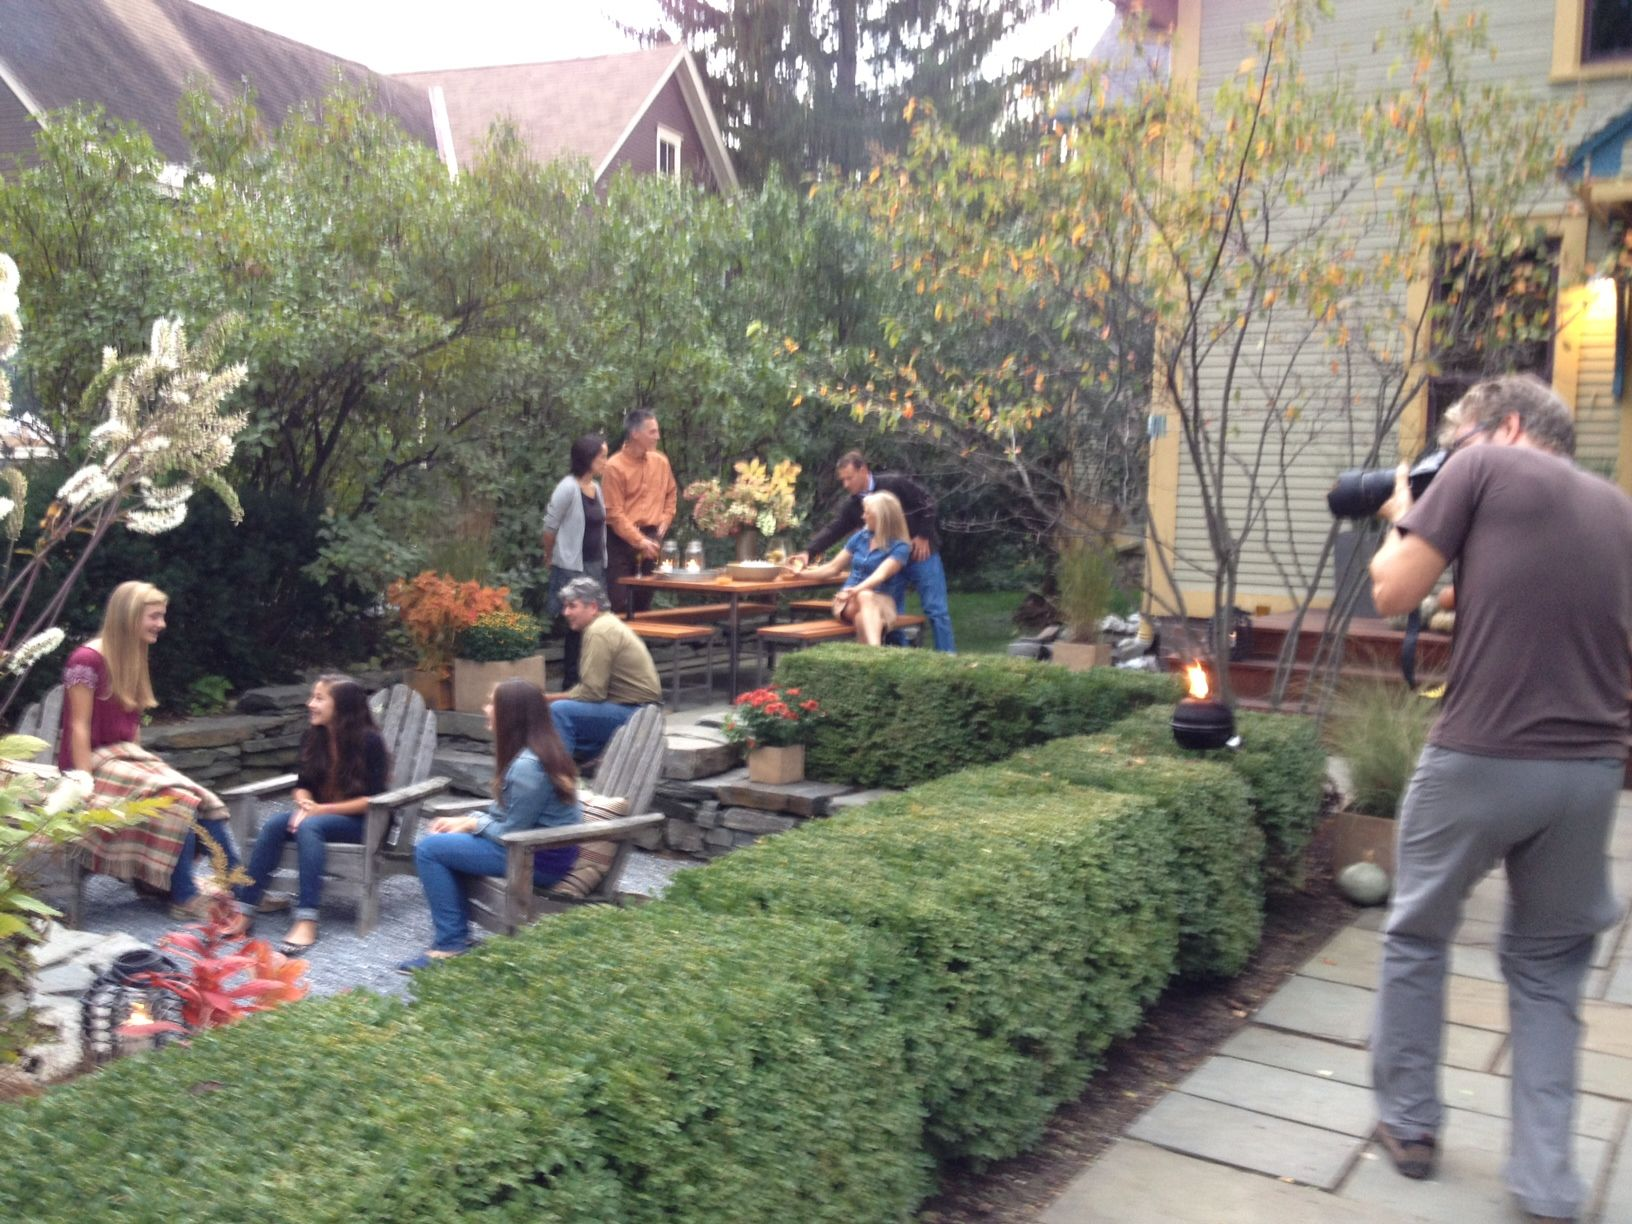 Shooting A Backyard Party Scene Takes Lot Of Prep